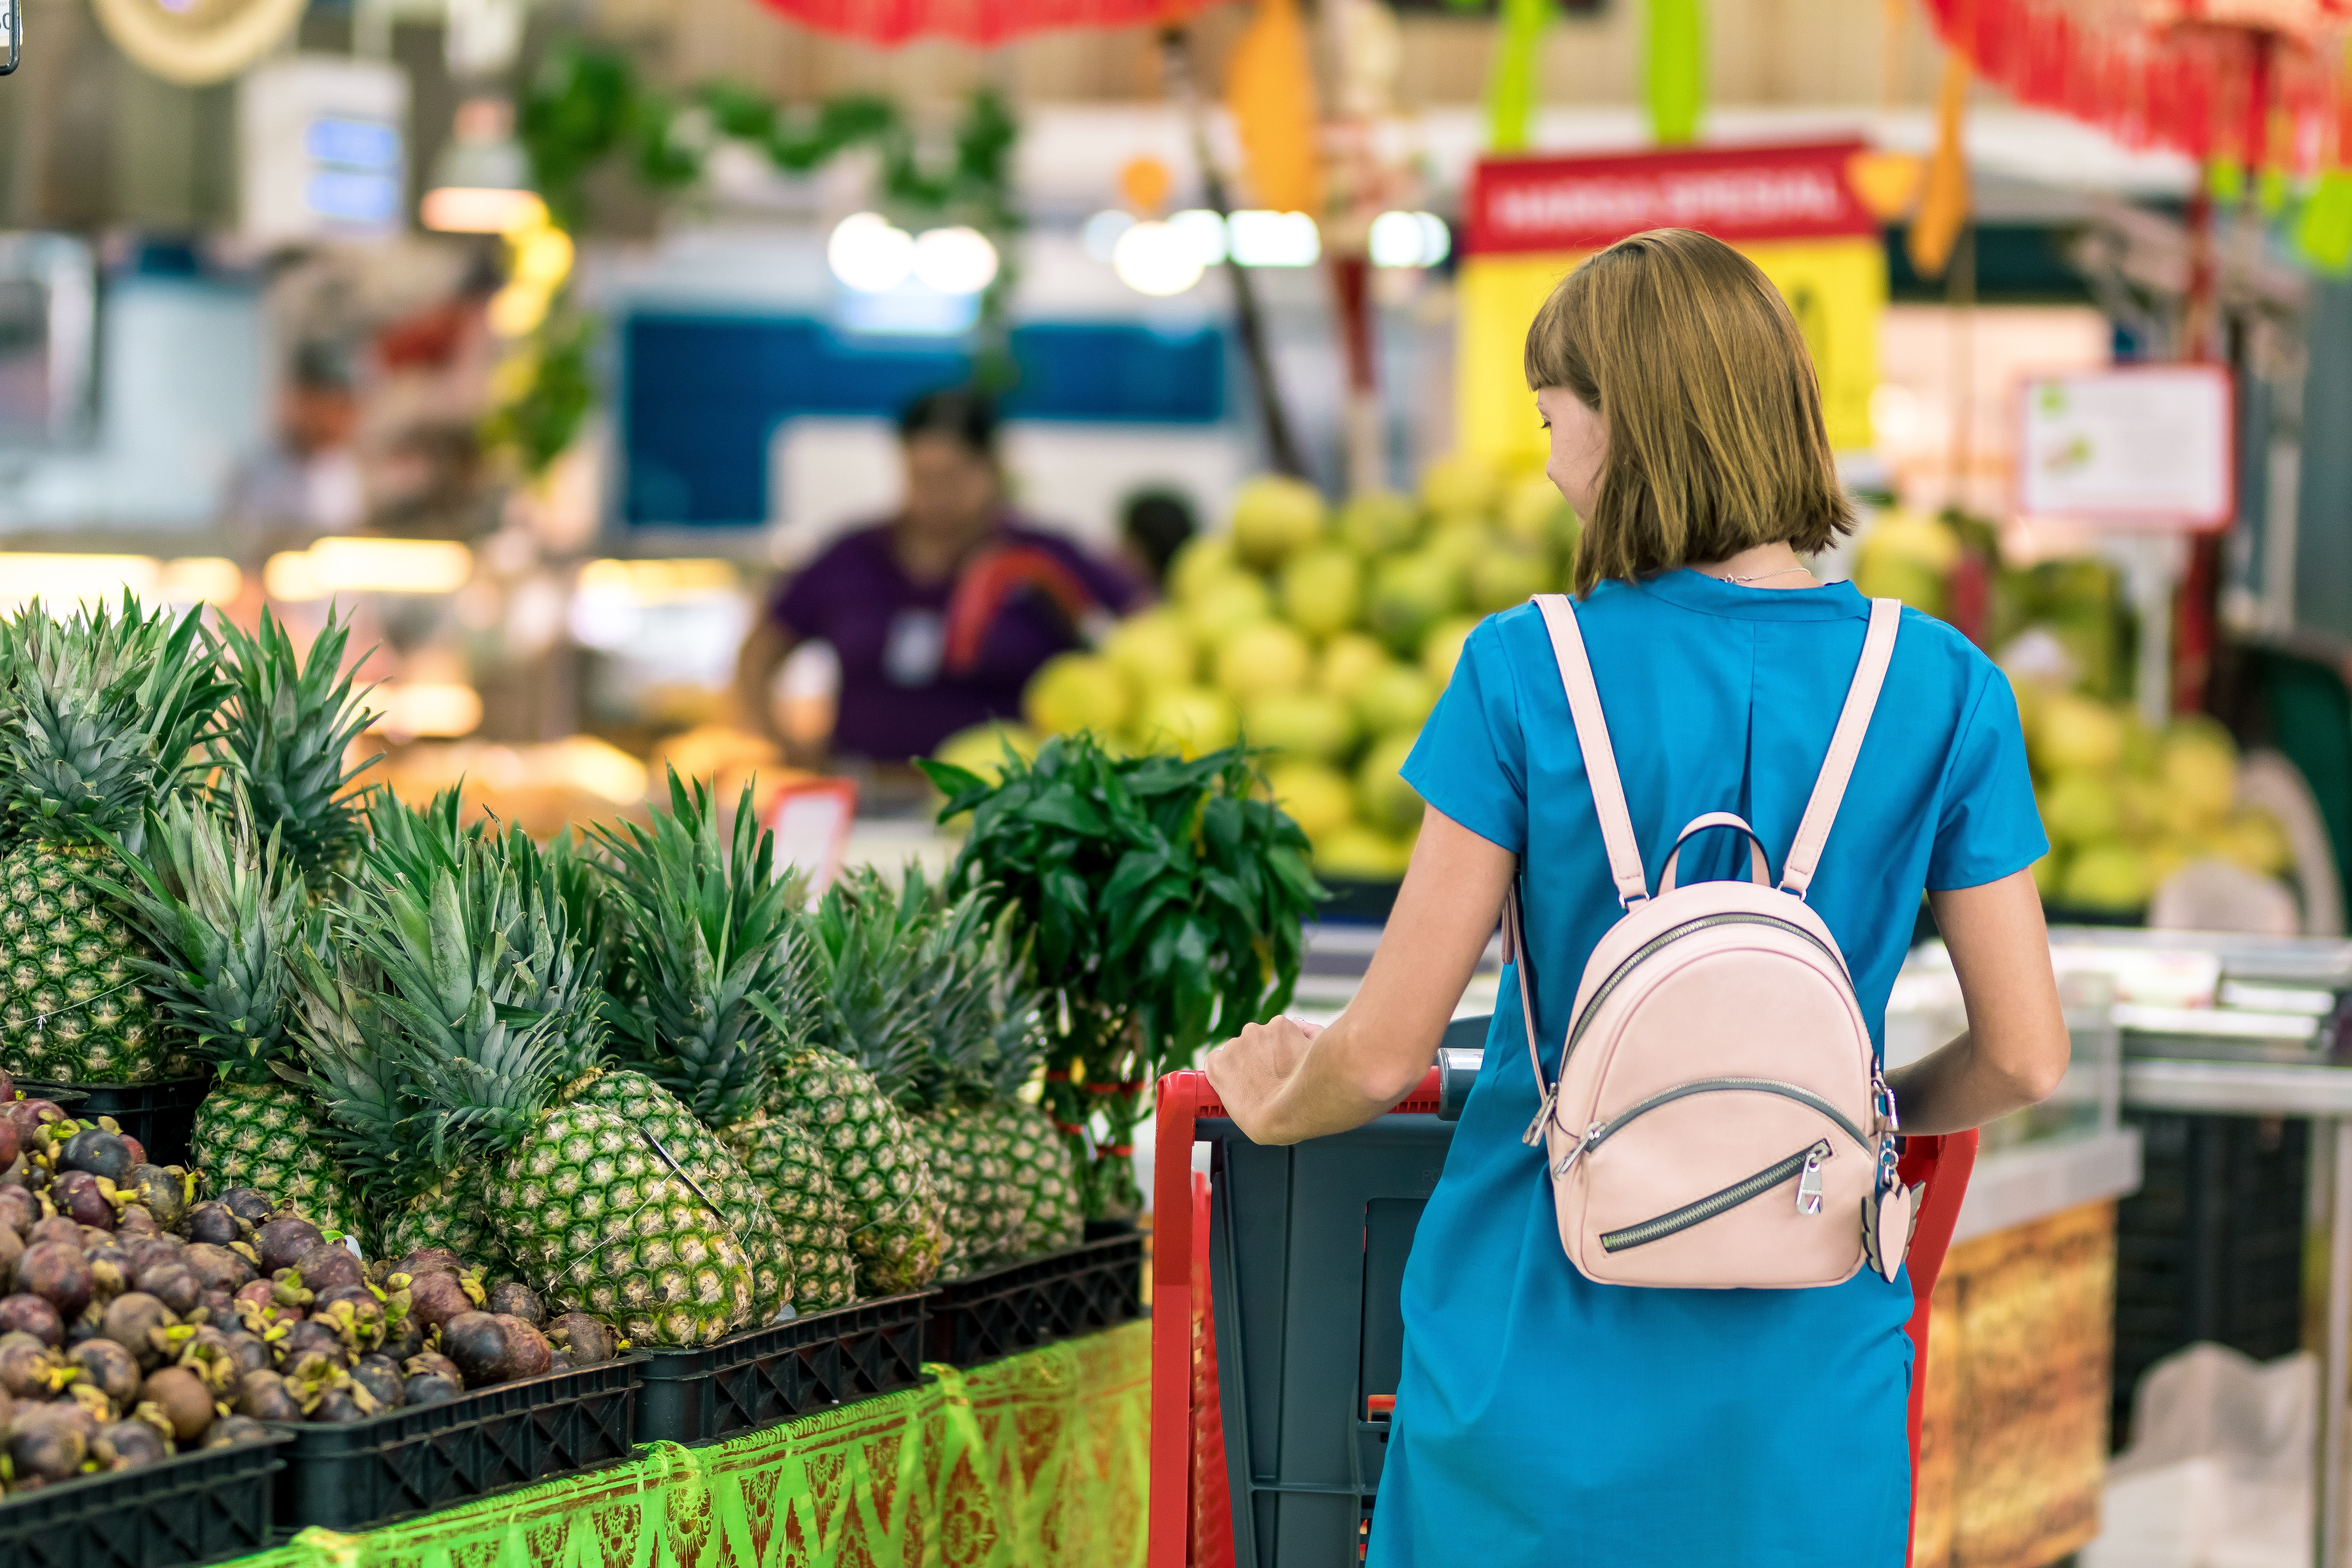 Woman with backpack shopping for pineapple